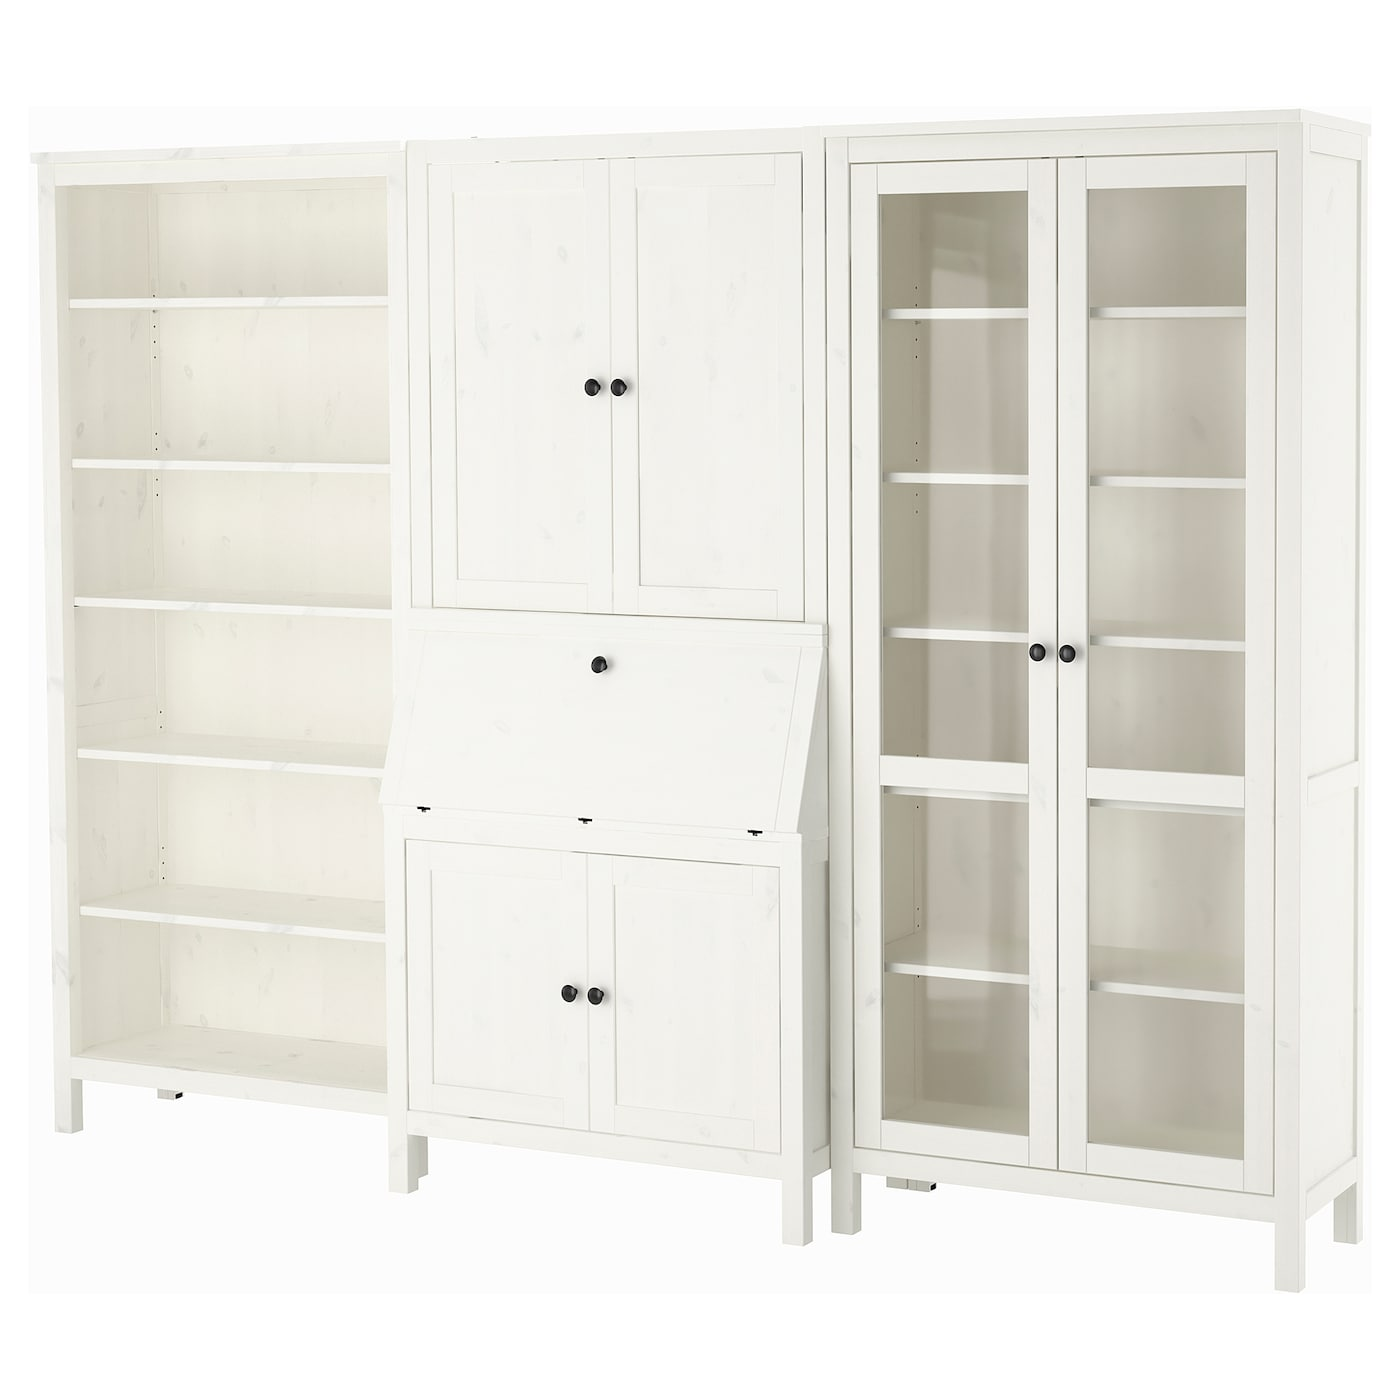 IKEA HEMNES bureau with add-on-unit+bookcase 1 fixed shelf for high stability.